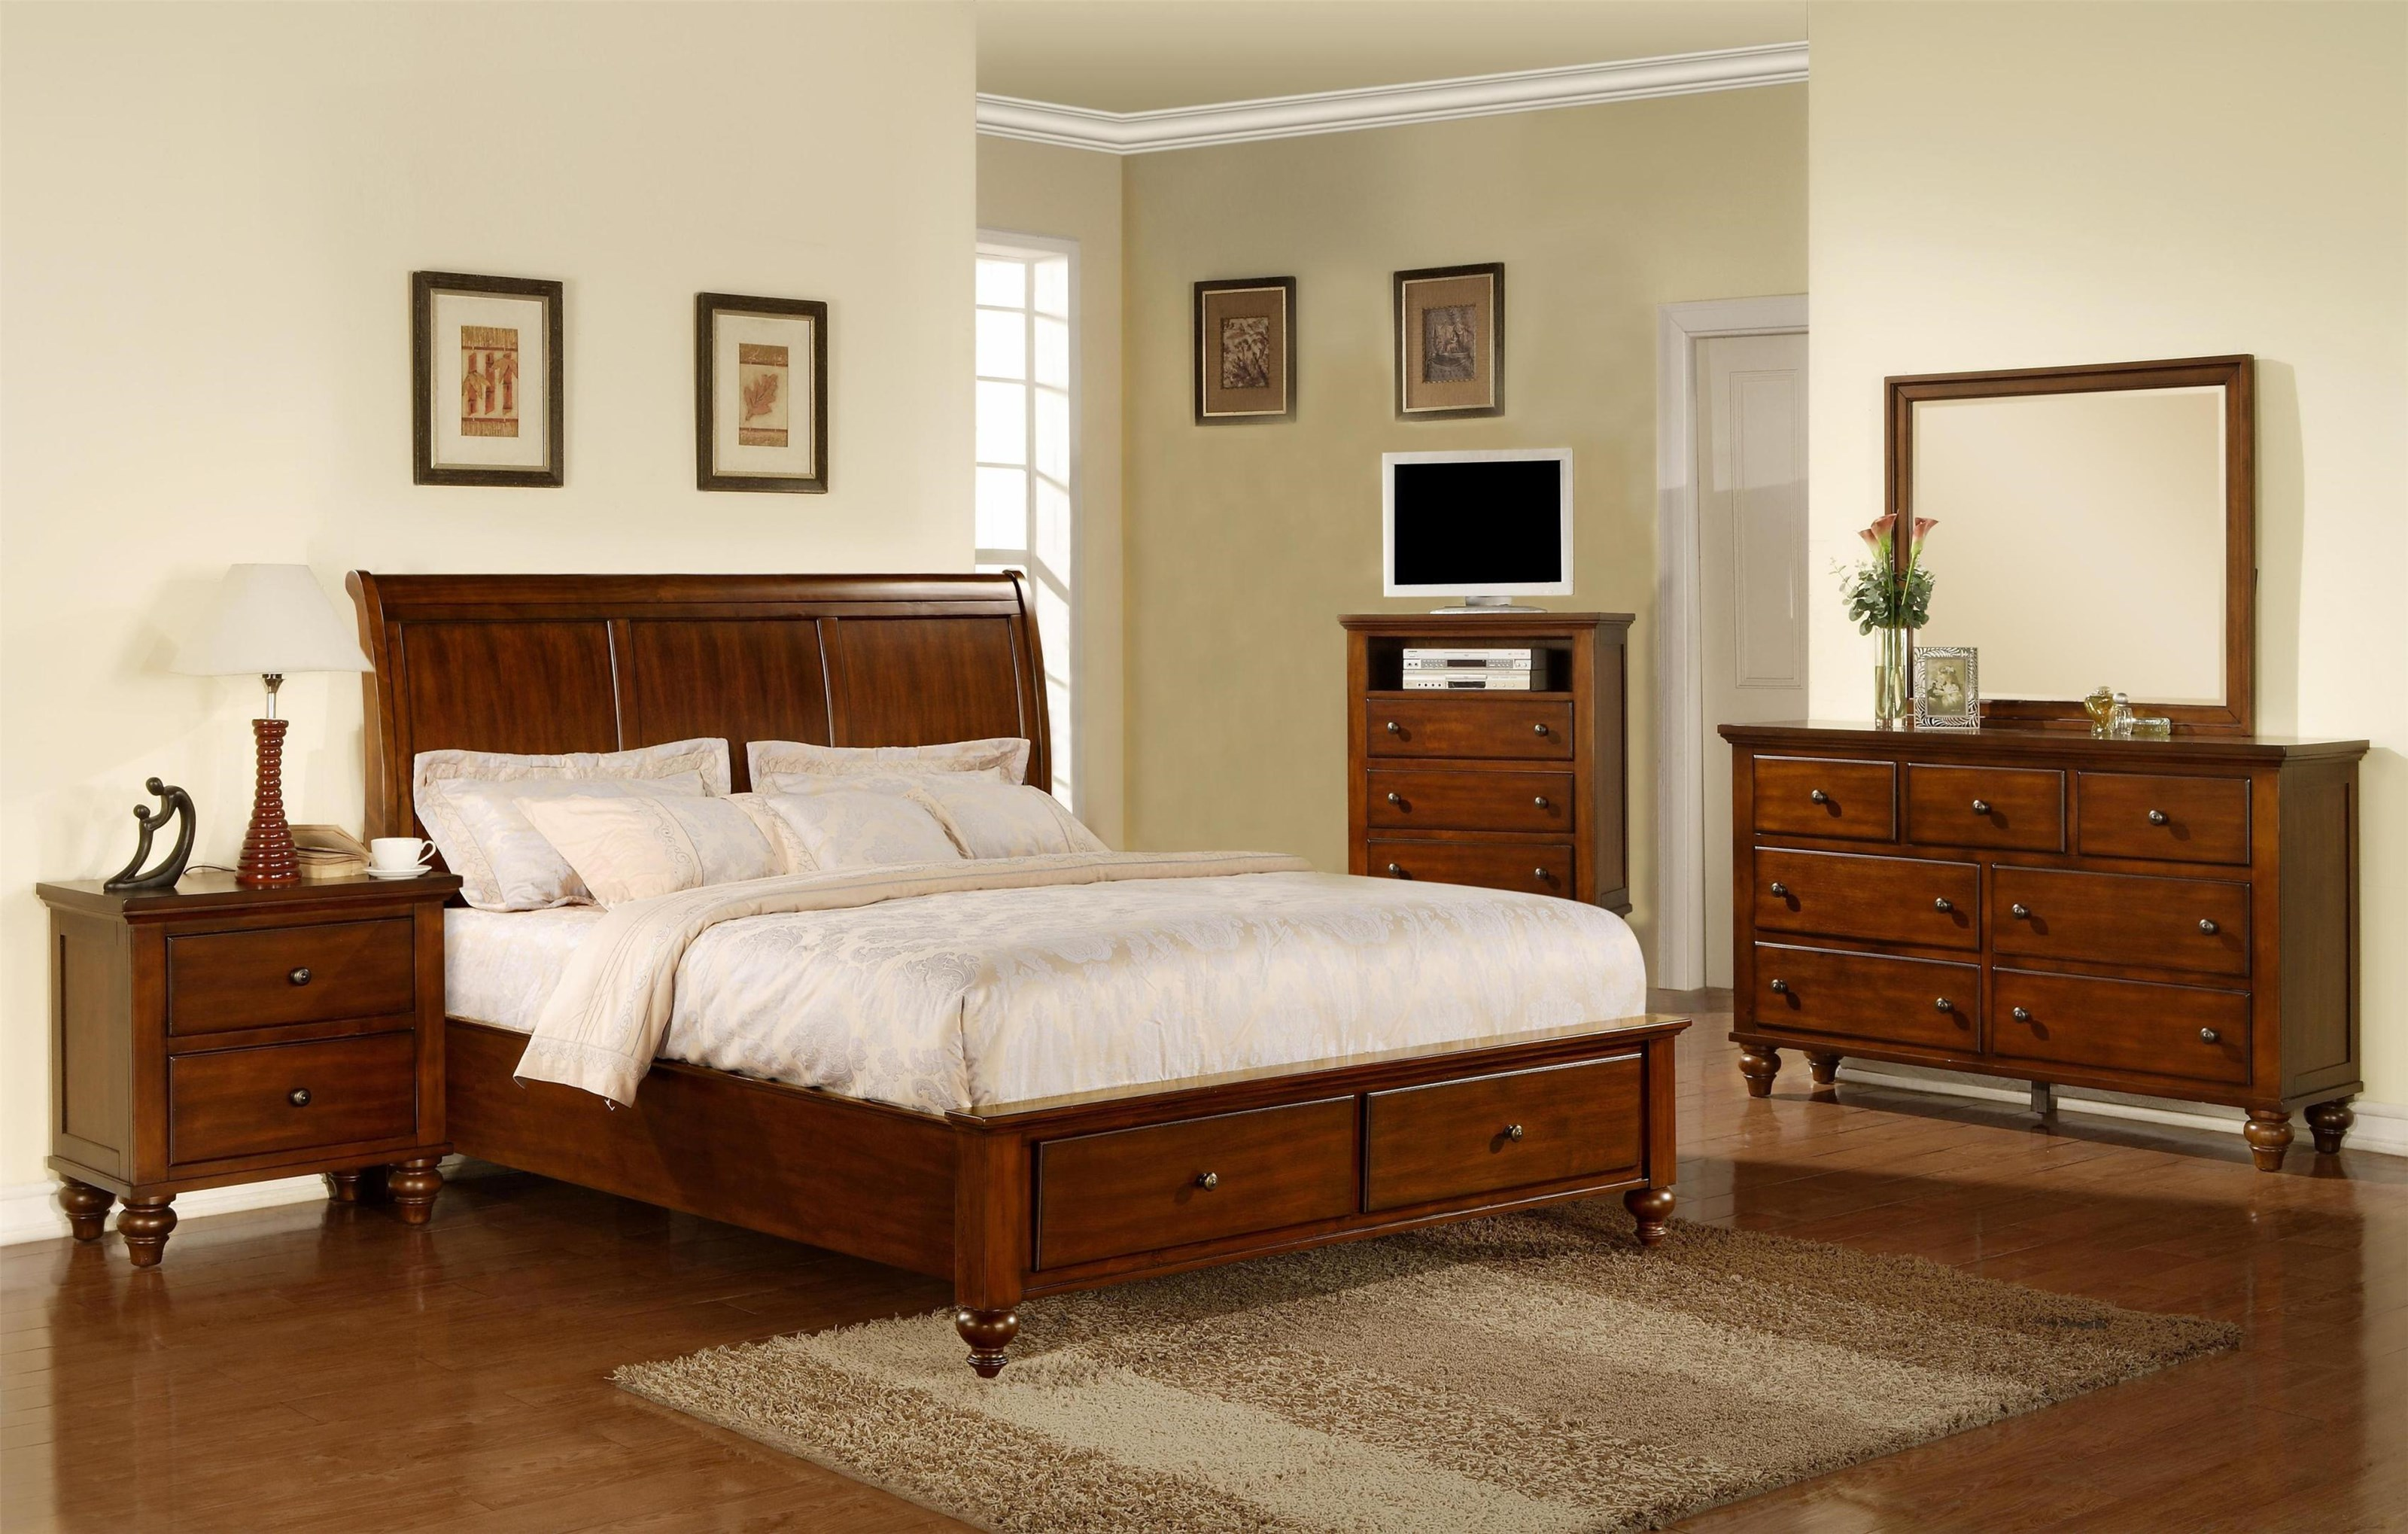 Elements international chatham king 6 pc bedroom group for International decor bed